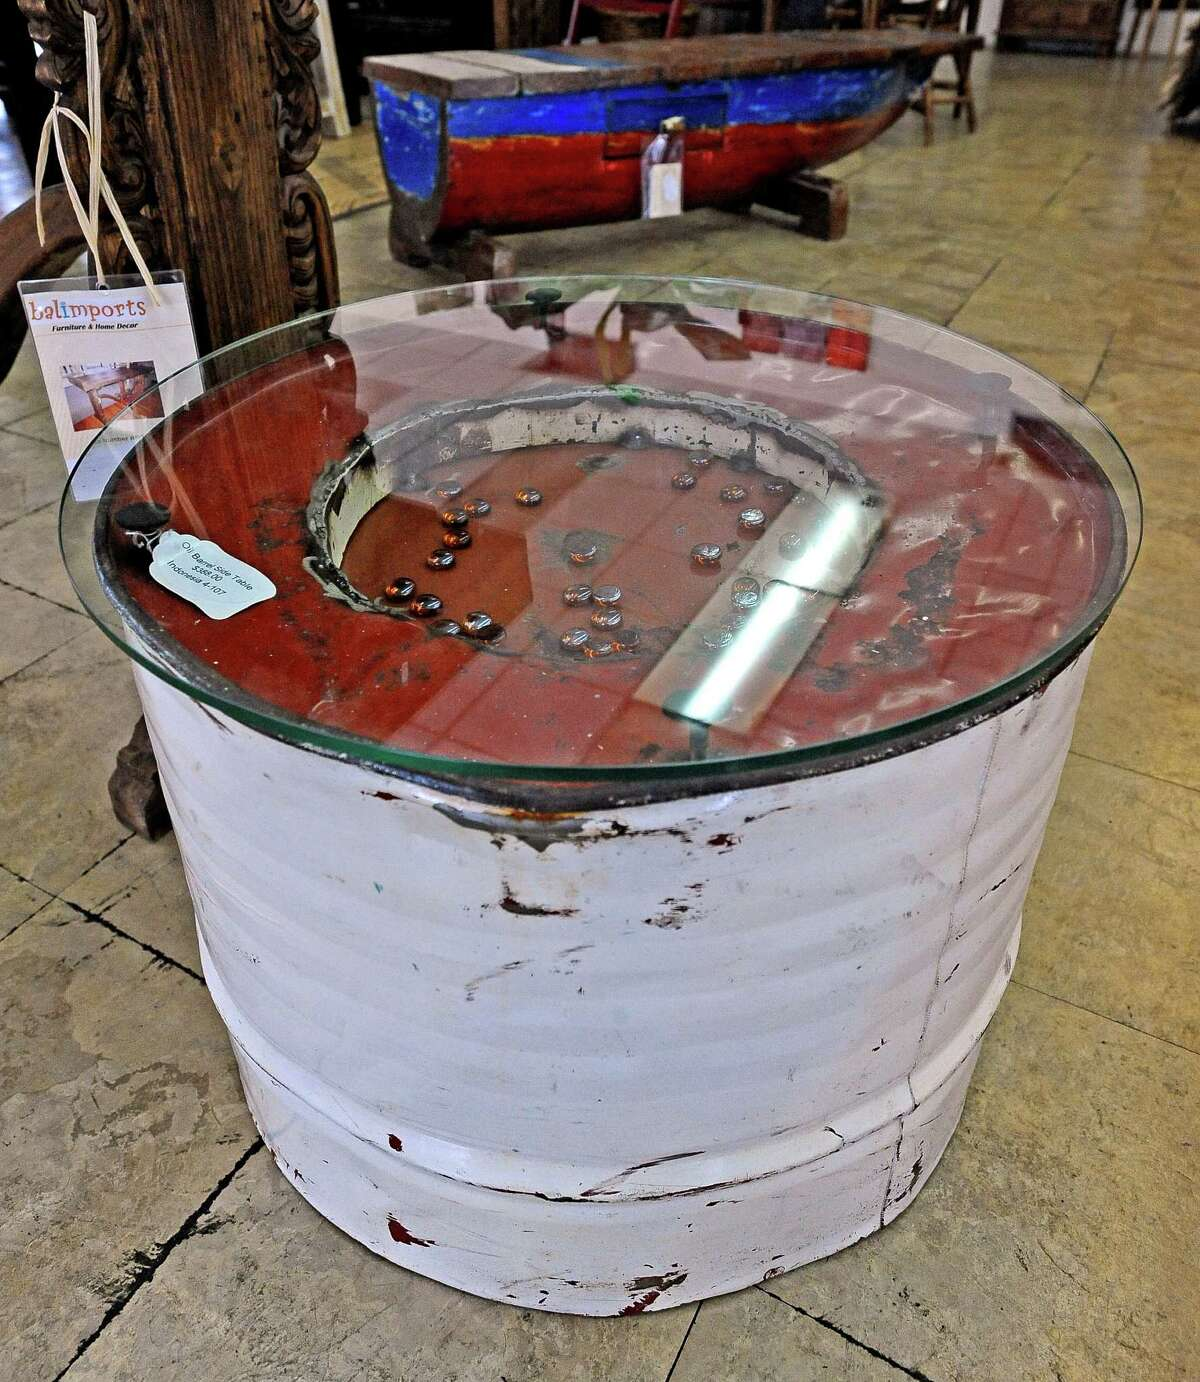 Balimports in Beaumont offers a repurposed 55 gallon oil drum that is cut in half and used as a side table with a removable glass top to change internal decor. Photo taken Friday, July 12, 2013. Photo taken: Randy Edwards/The Enterprise